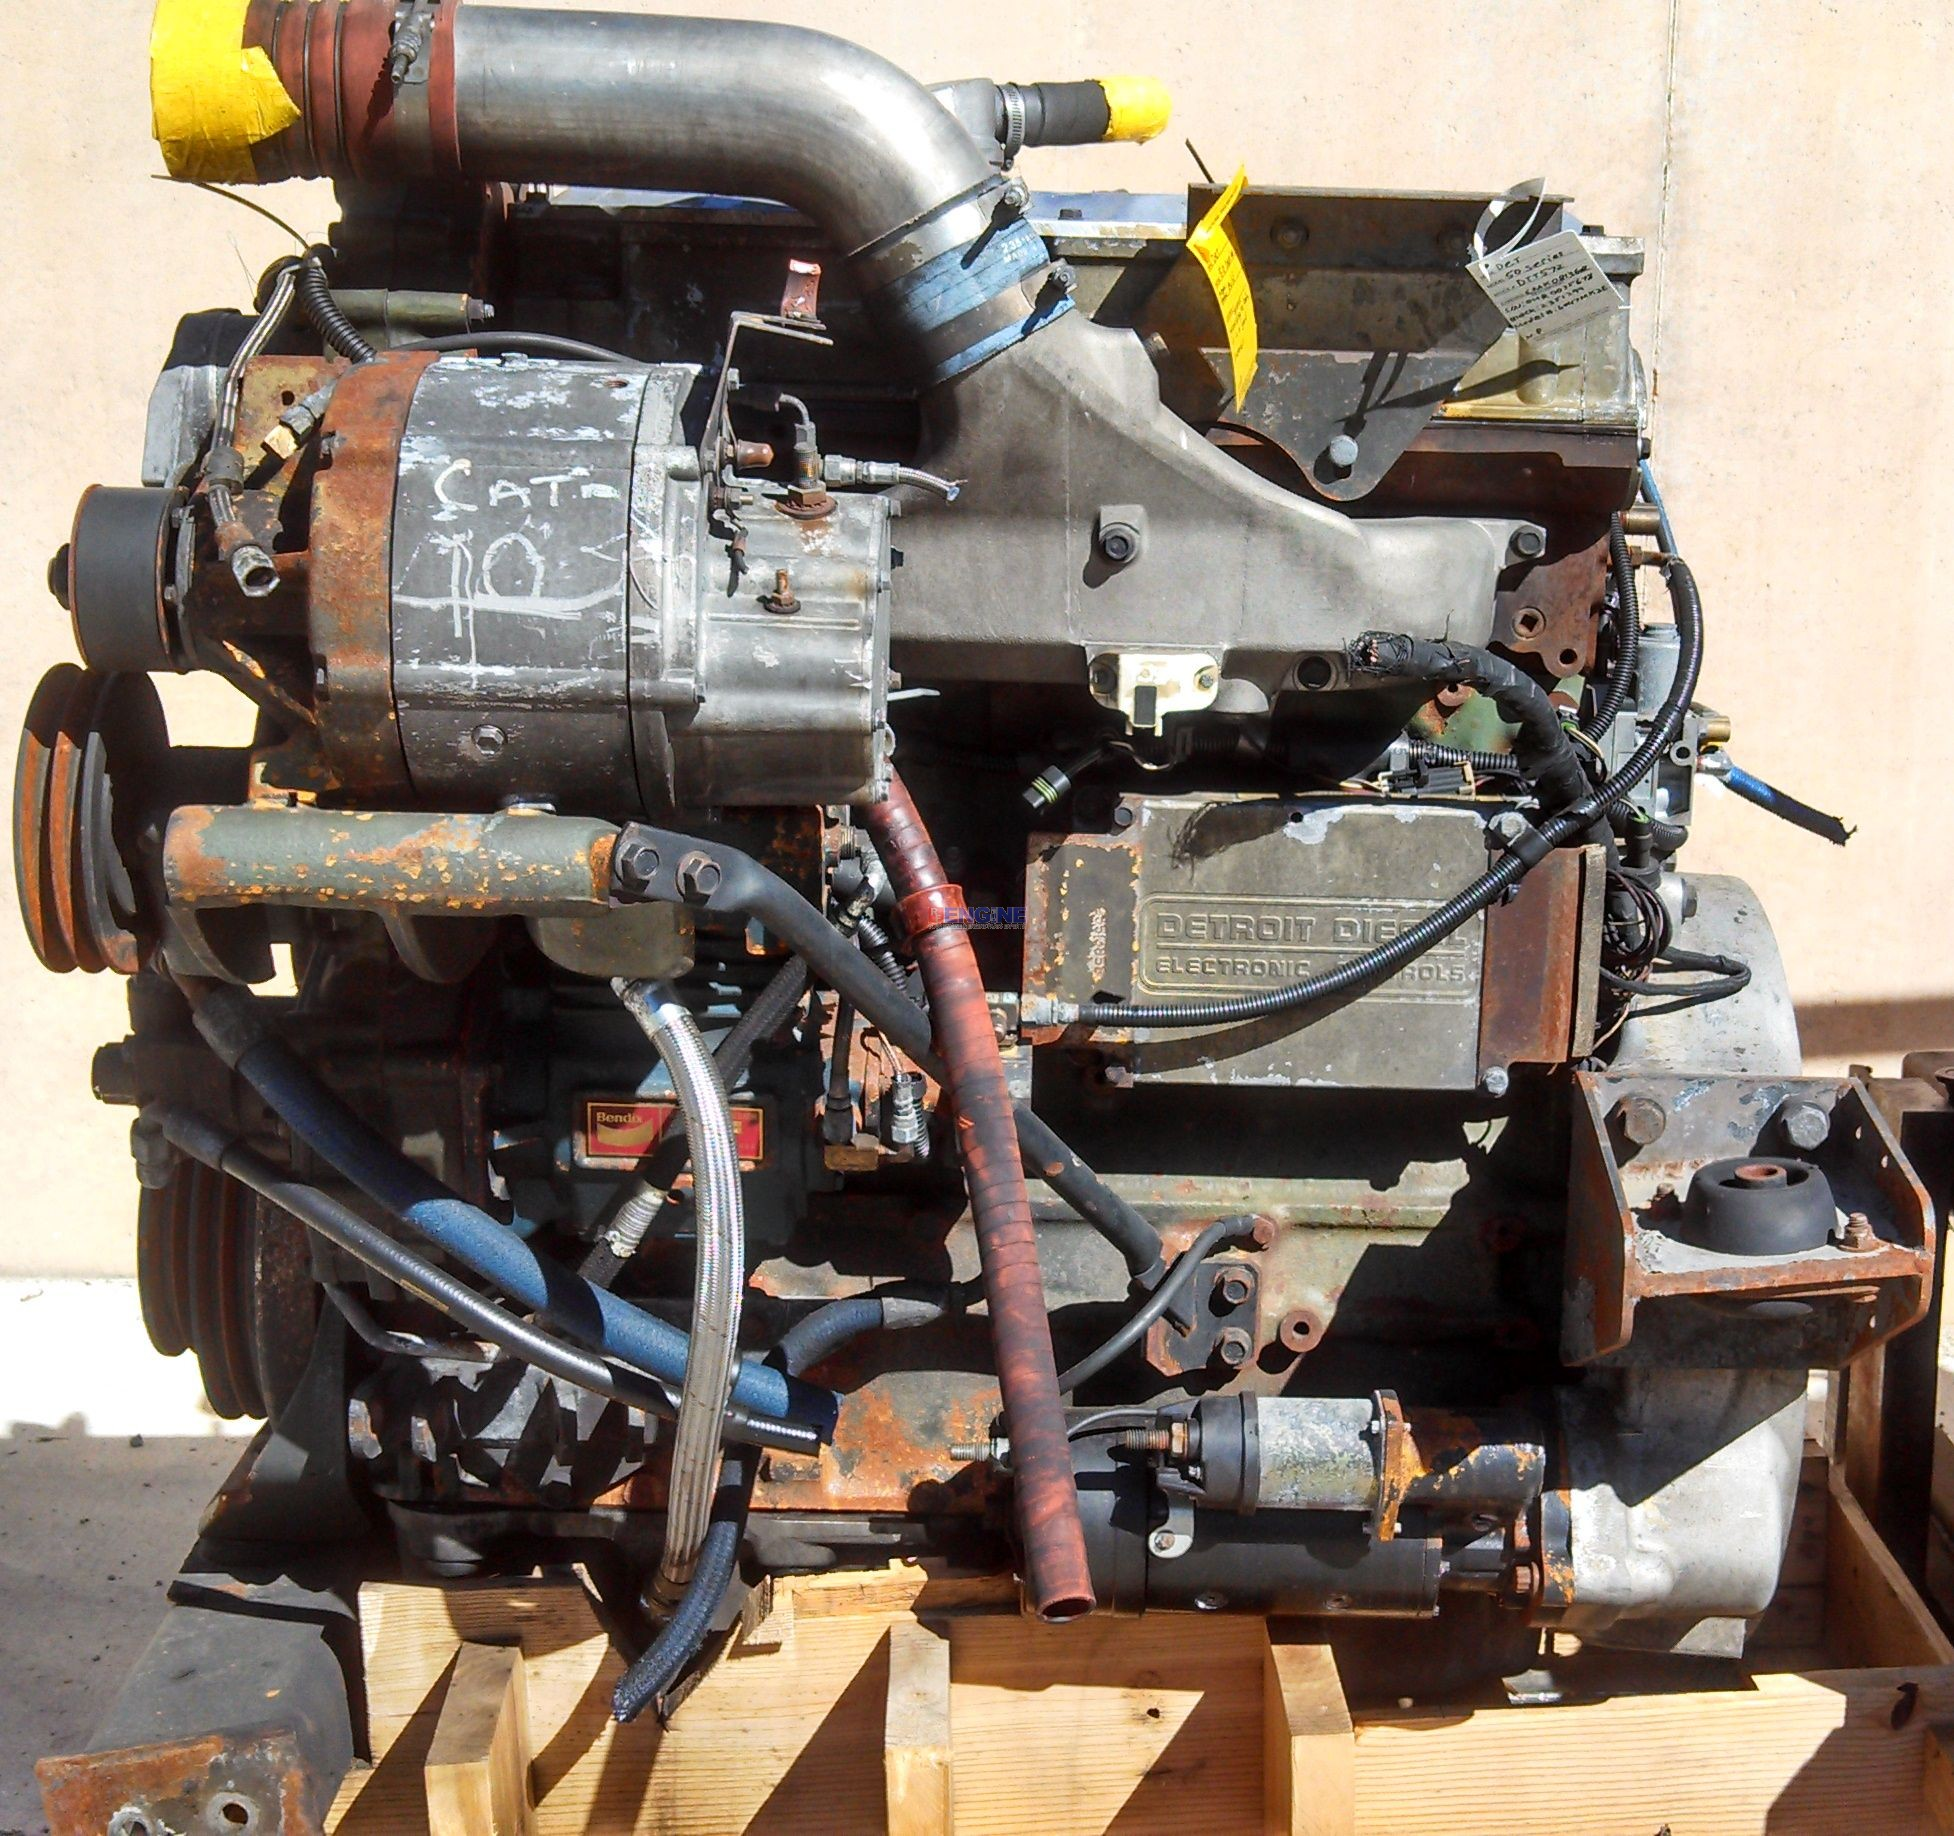 R. F. Engine Engine Good Running Detroit Diesel 50 series S/N: 04R0035678 BLOCK: 2351299